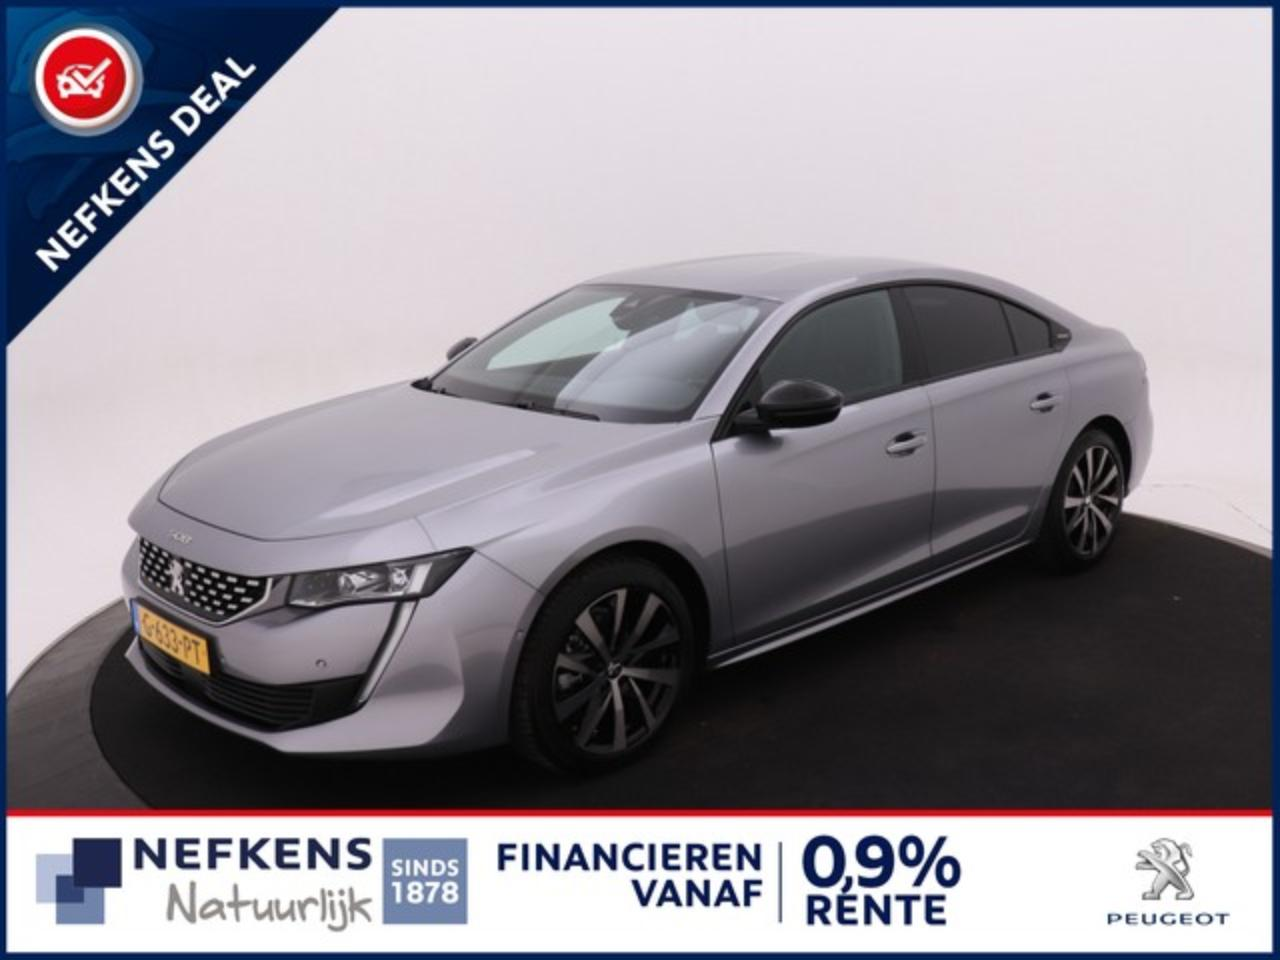 Peugeot 508 1.6 180 PK GT Line Automaat EAT8 | Full LED | Came